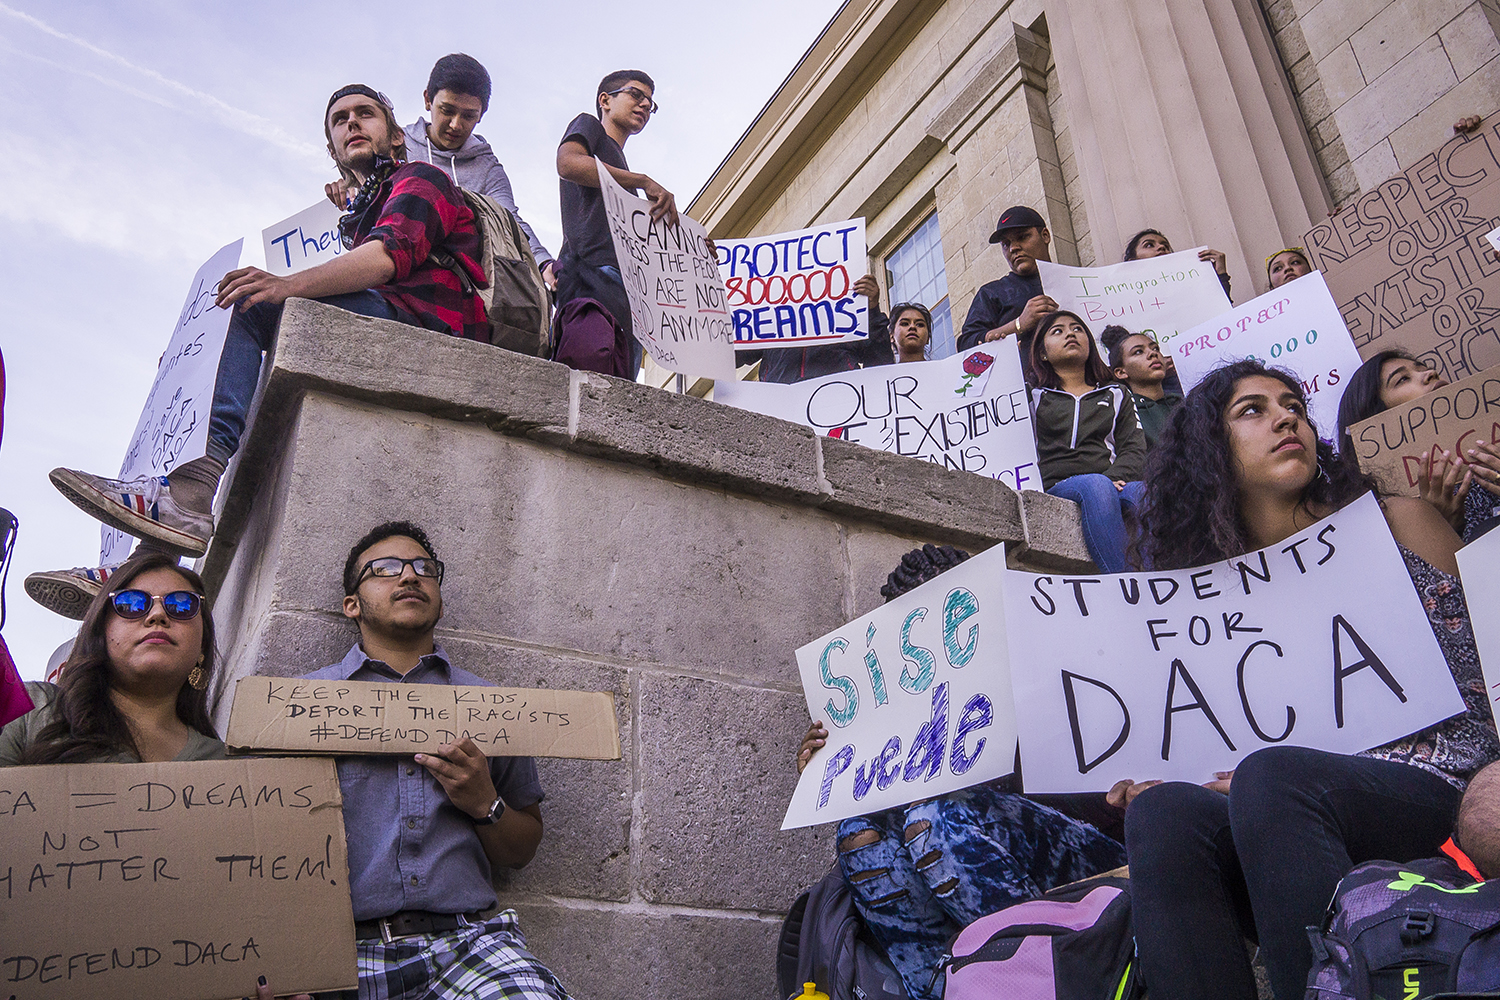 Supporters hold signs at the Old Capitol Building on Thursday, Sept. 7, 2017. The recent decision regarding DACA's rescission has been a highly controversial issue in national politics.